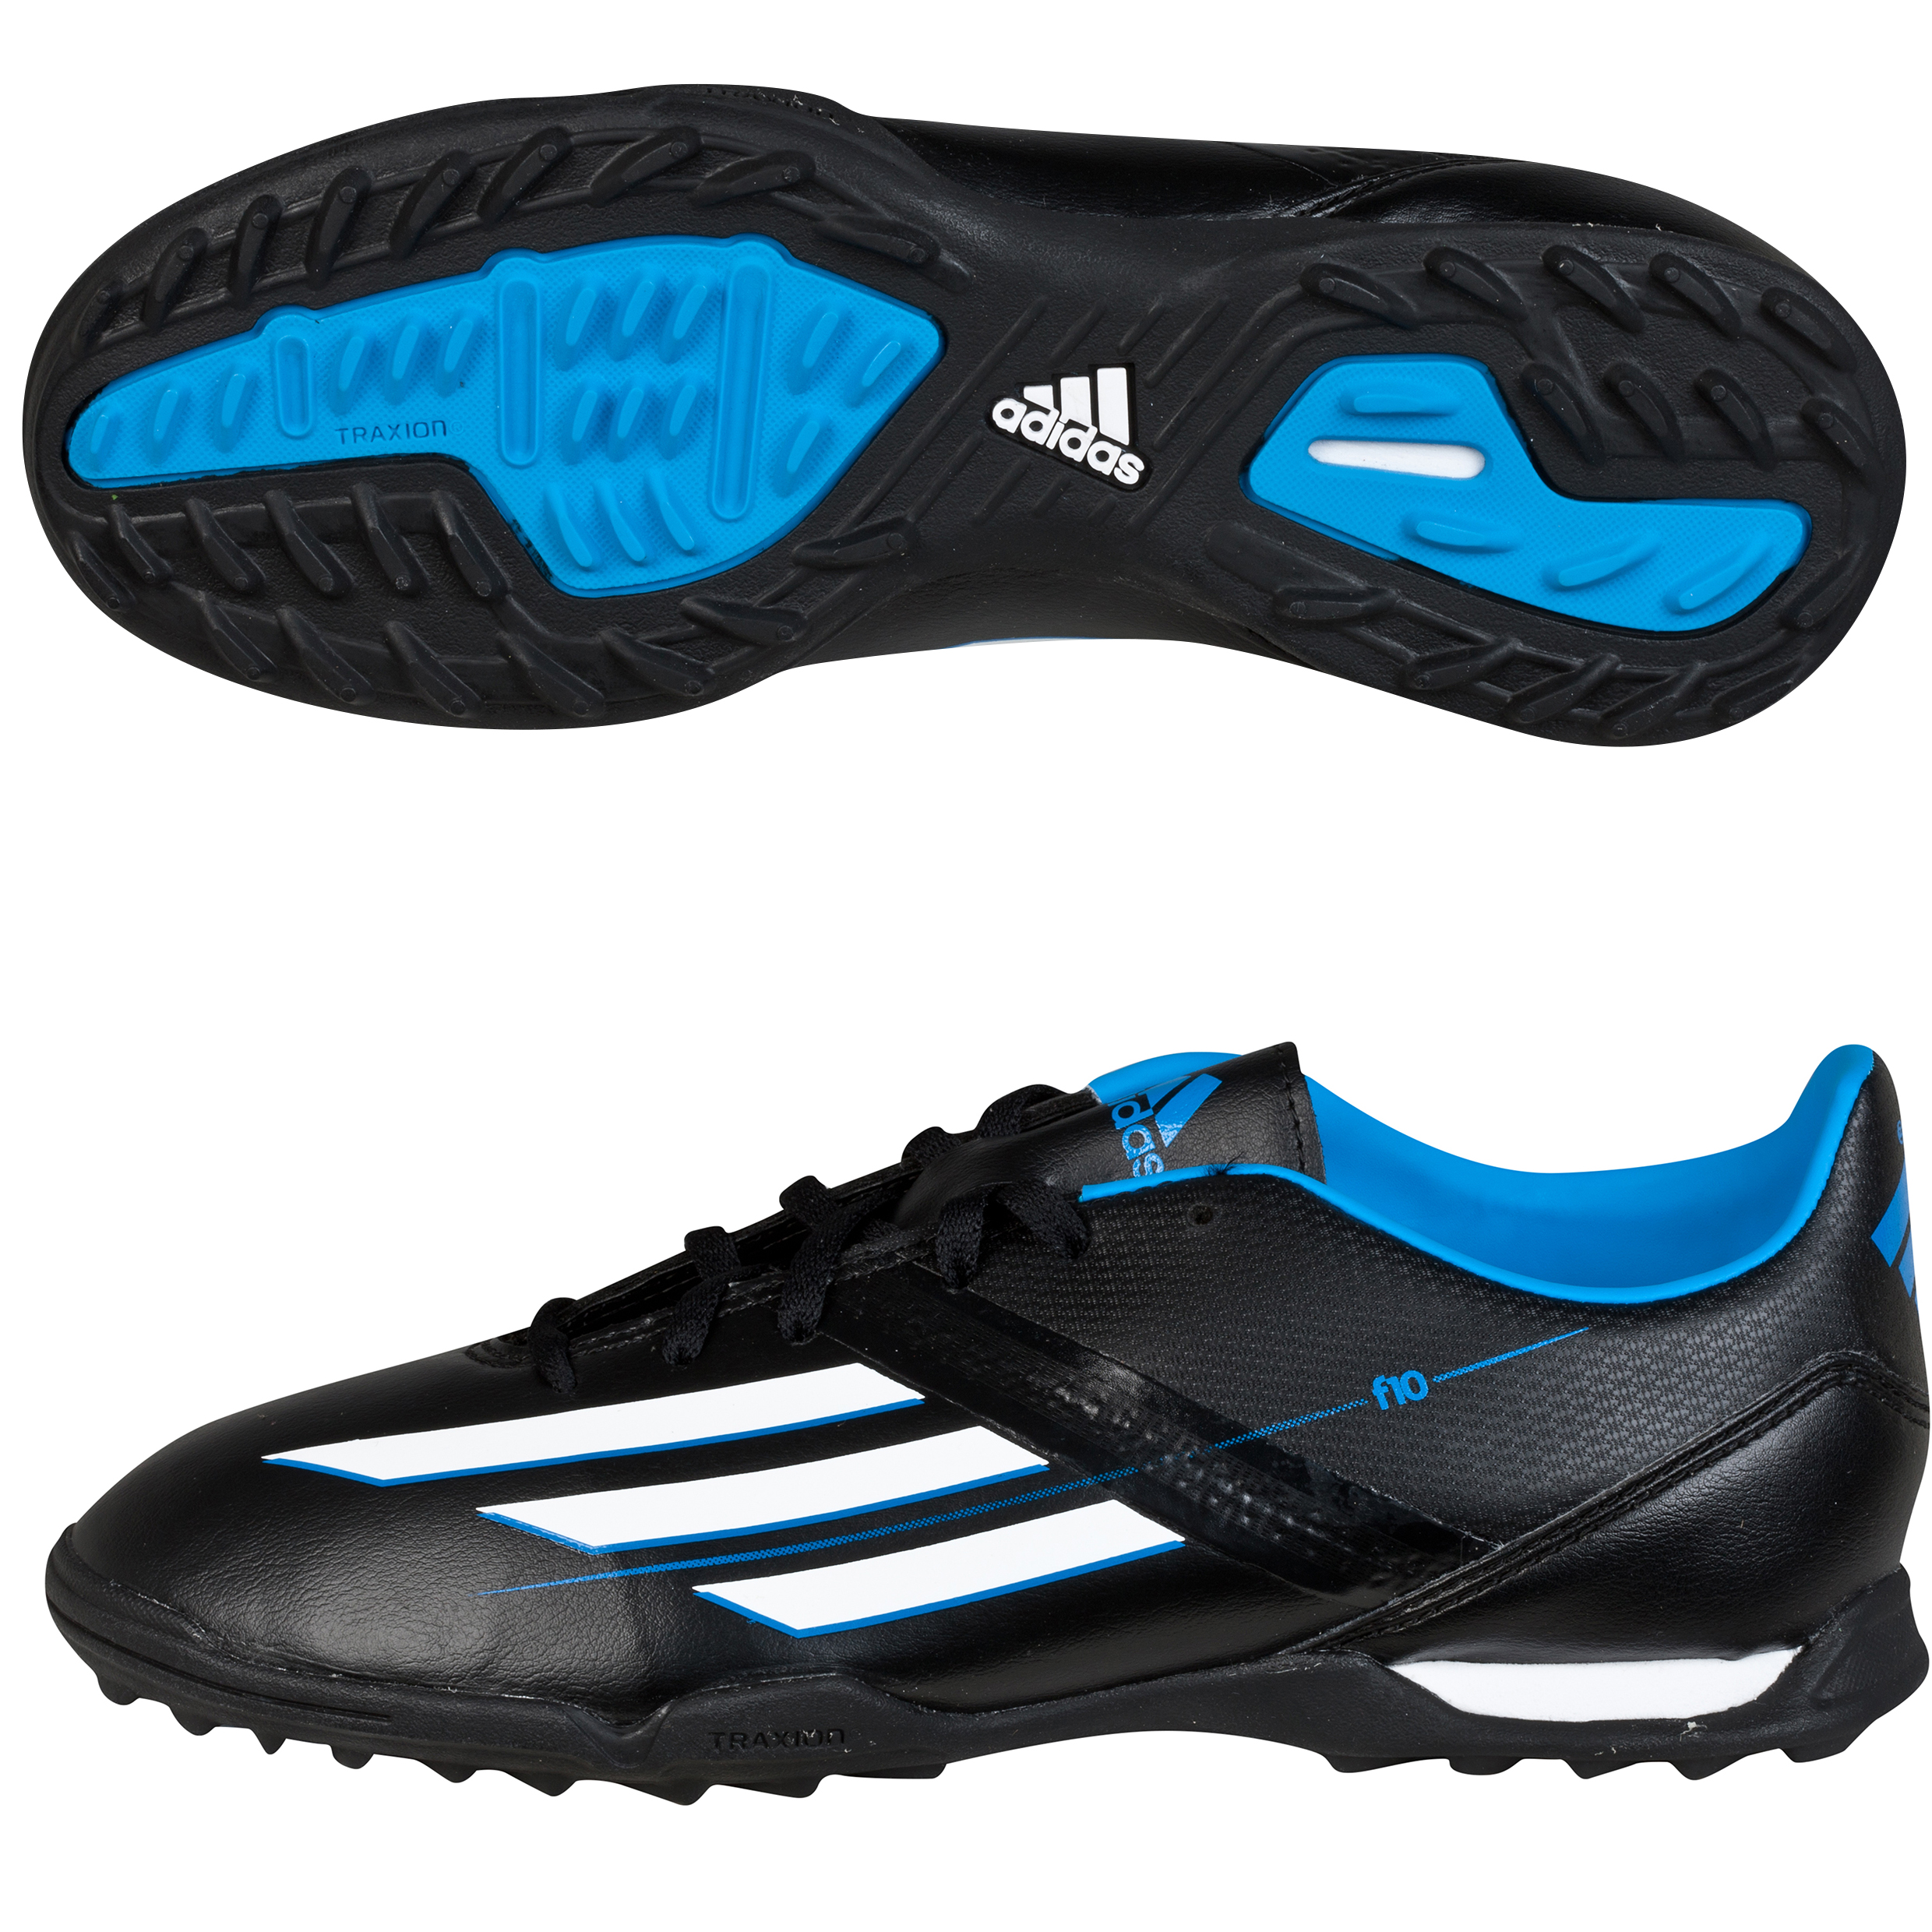 Adidas F10 TRX Astroturf Trainers - Kids Black